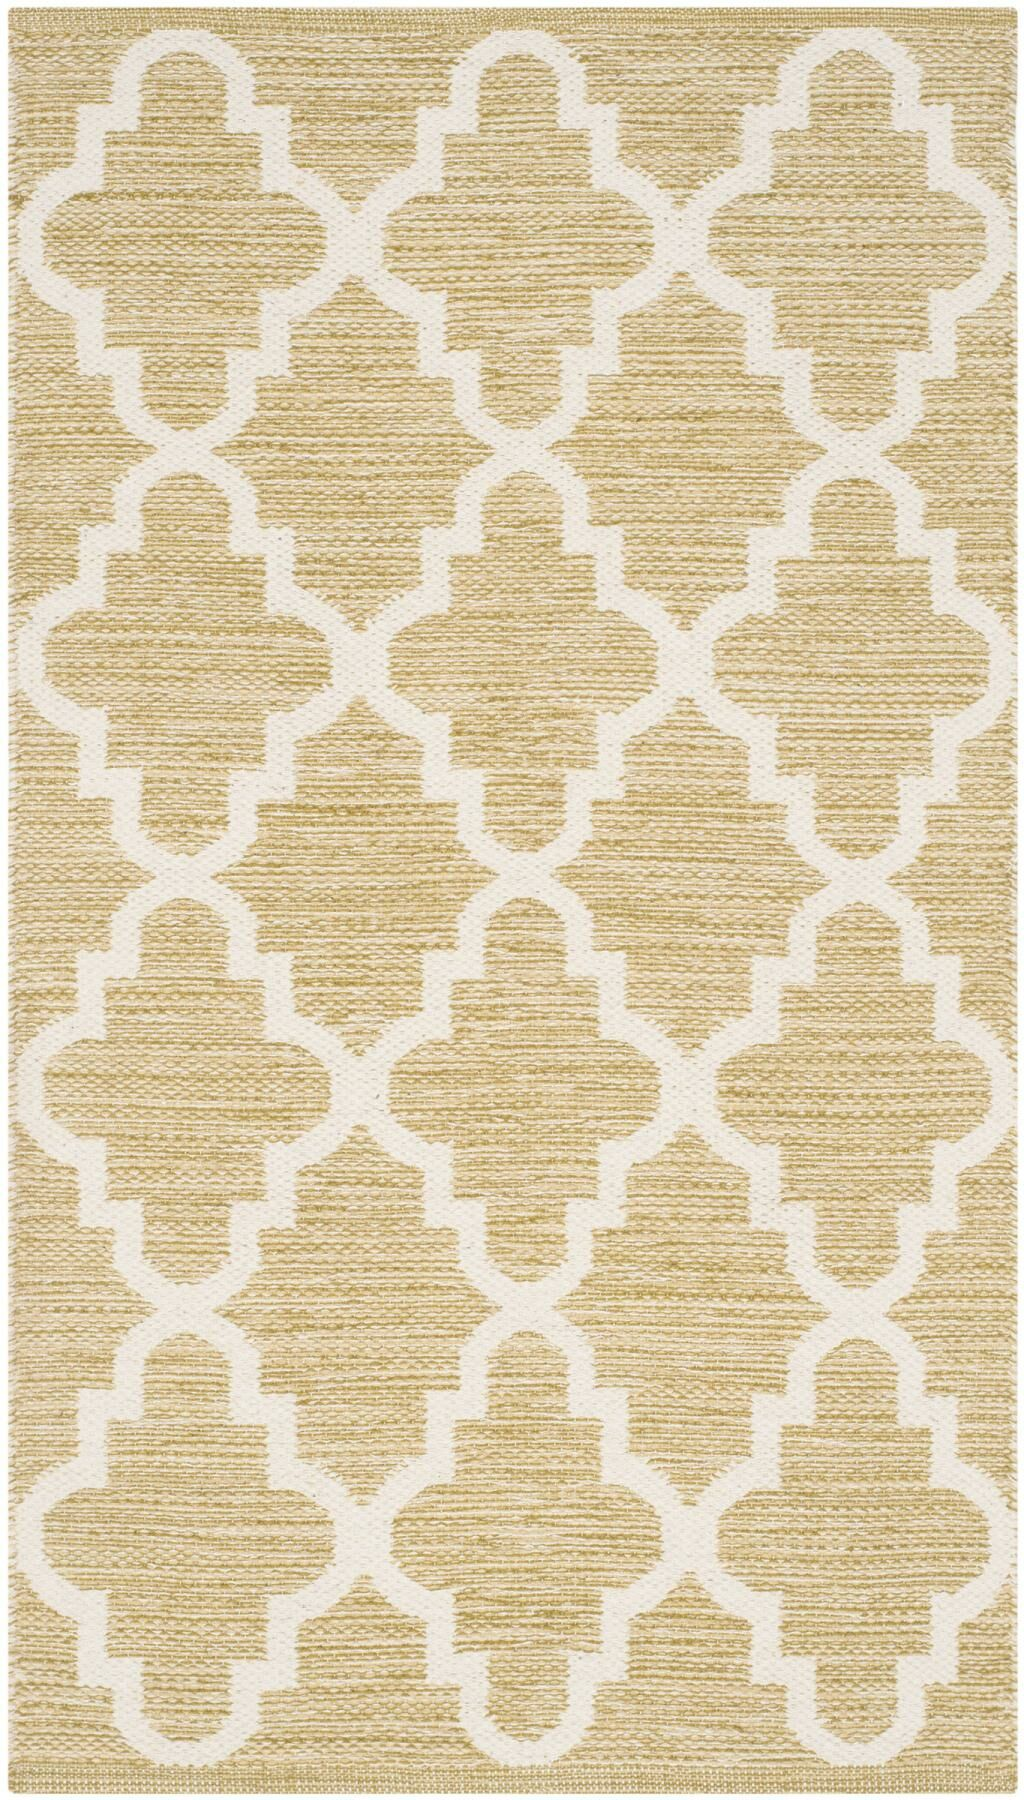 Shevchenko Place Hand-Woven Green / Ivory Area Rug Rug Size: Rectangle 4' x 6'